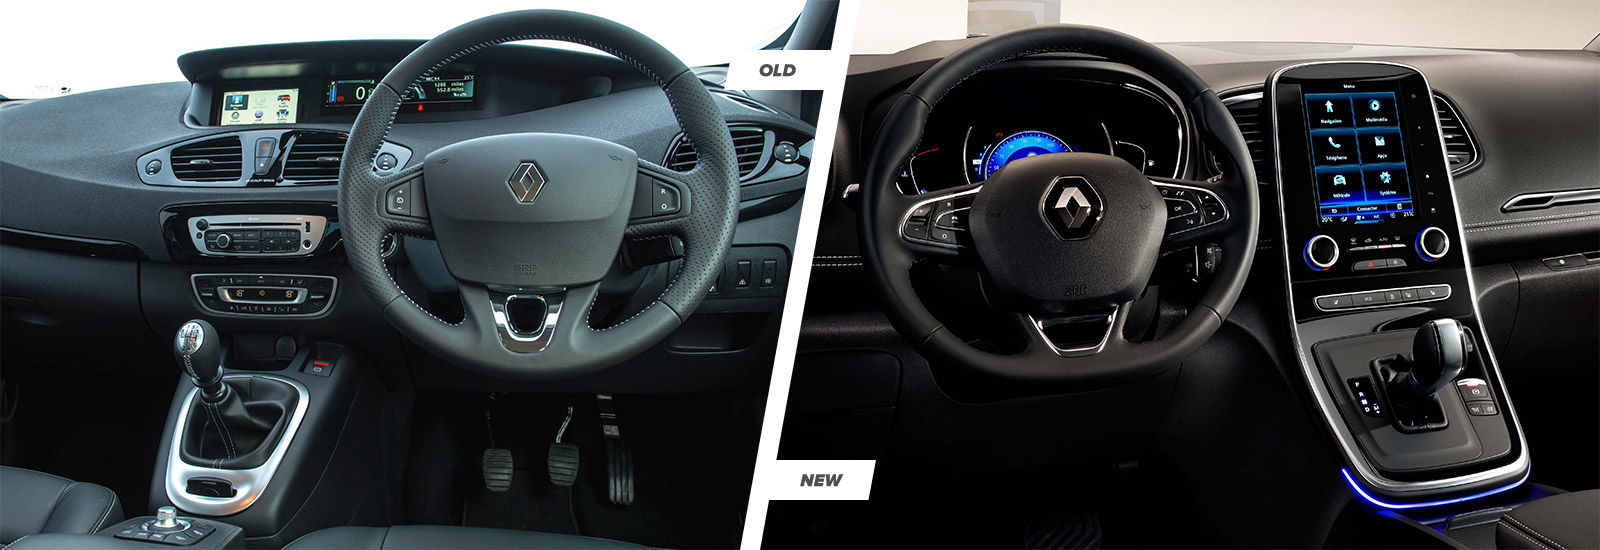 2016 renault scenic and grand scenic old vs new carwow for Interior renault scenic